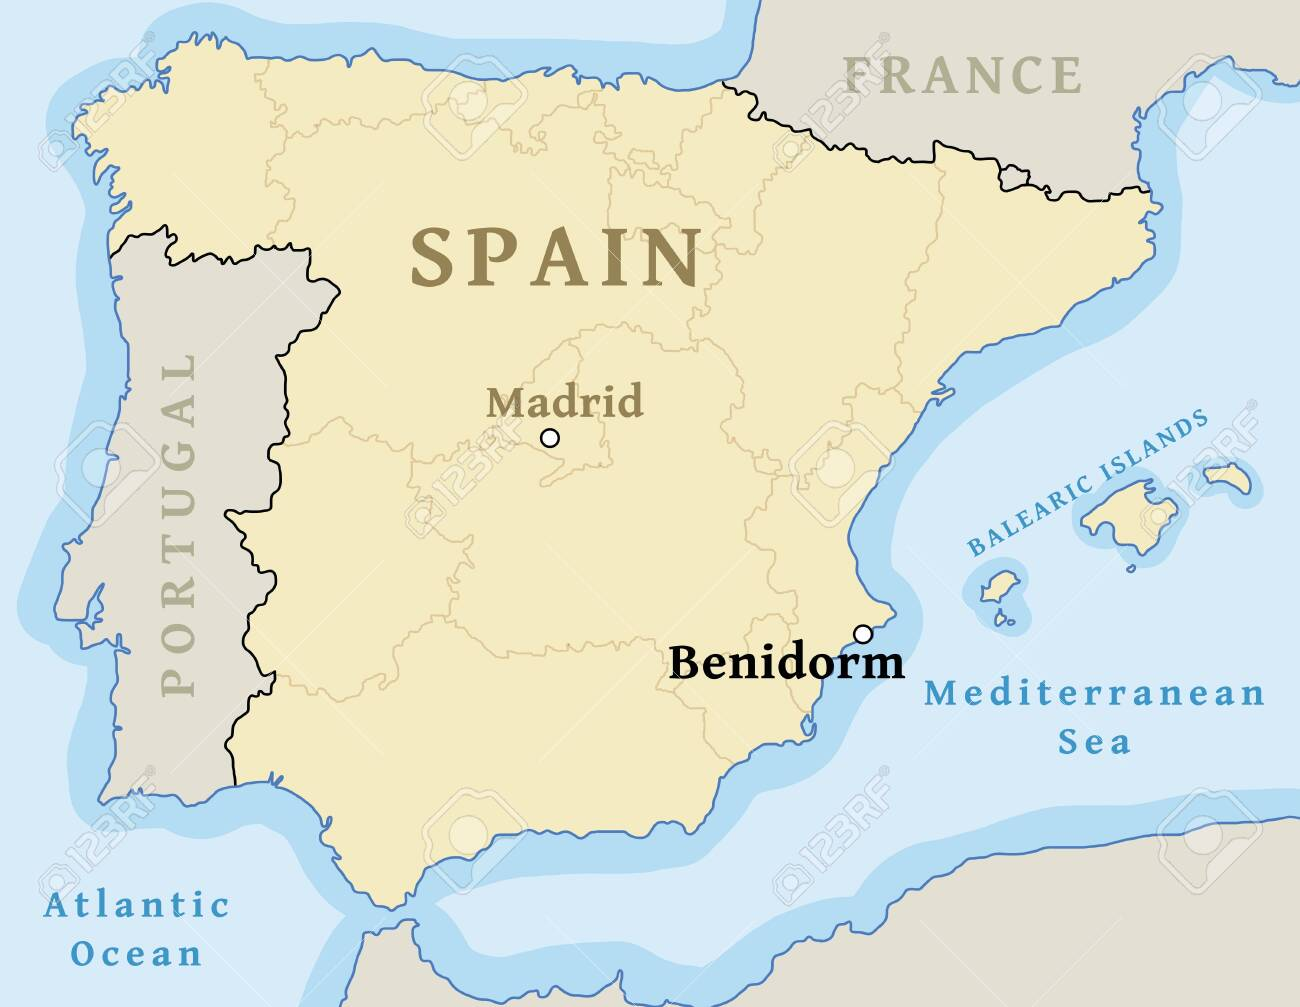 Map Of Spain Benidorm.Benidorm Map Location Locate City On Map Of Spain For News